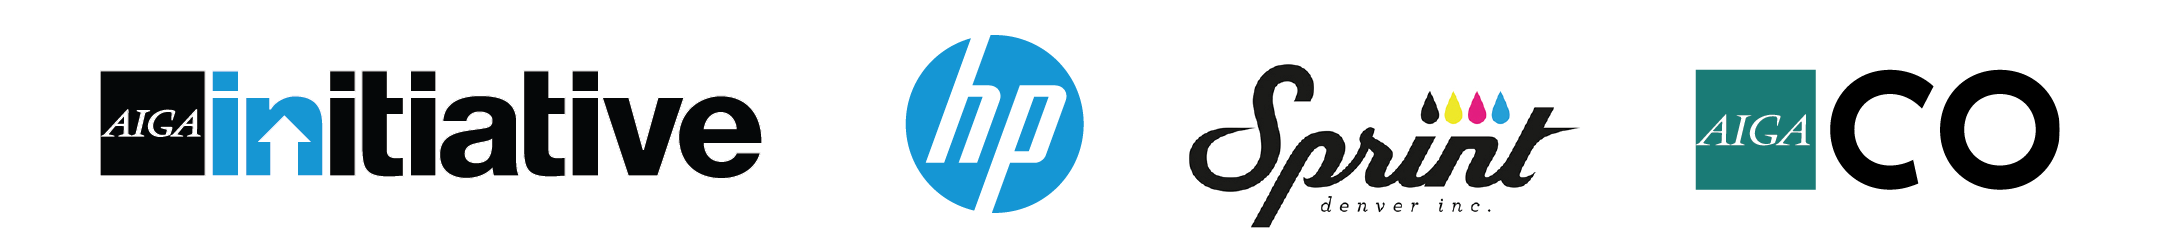 AIGA INiatives, HP, Sprint, and AIGA Colorado logos